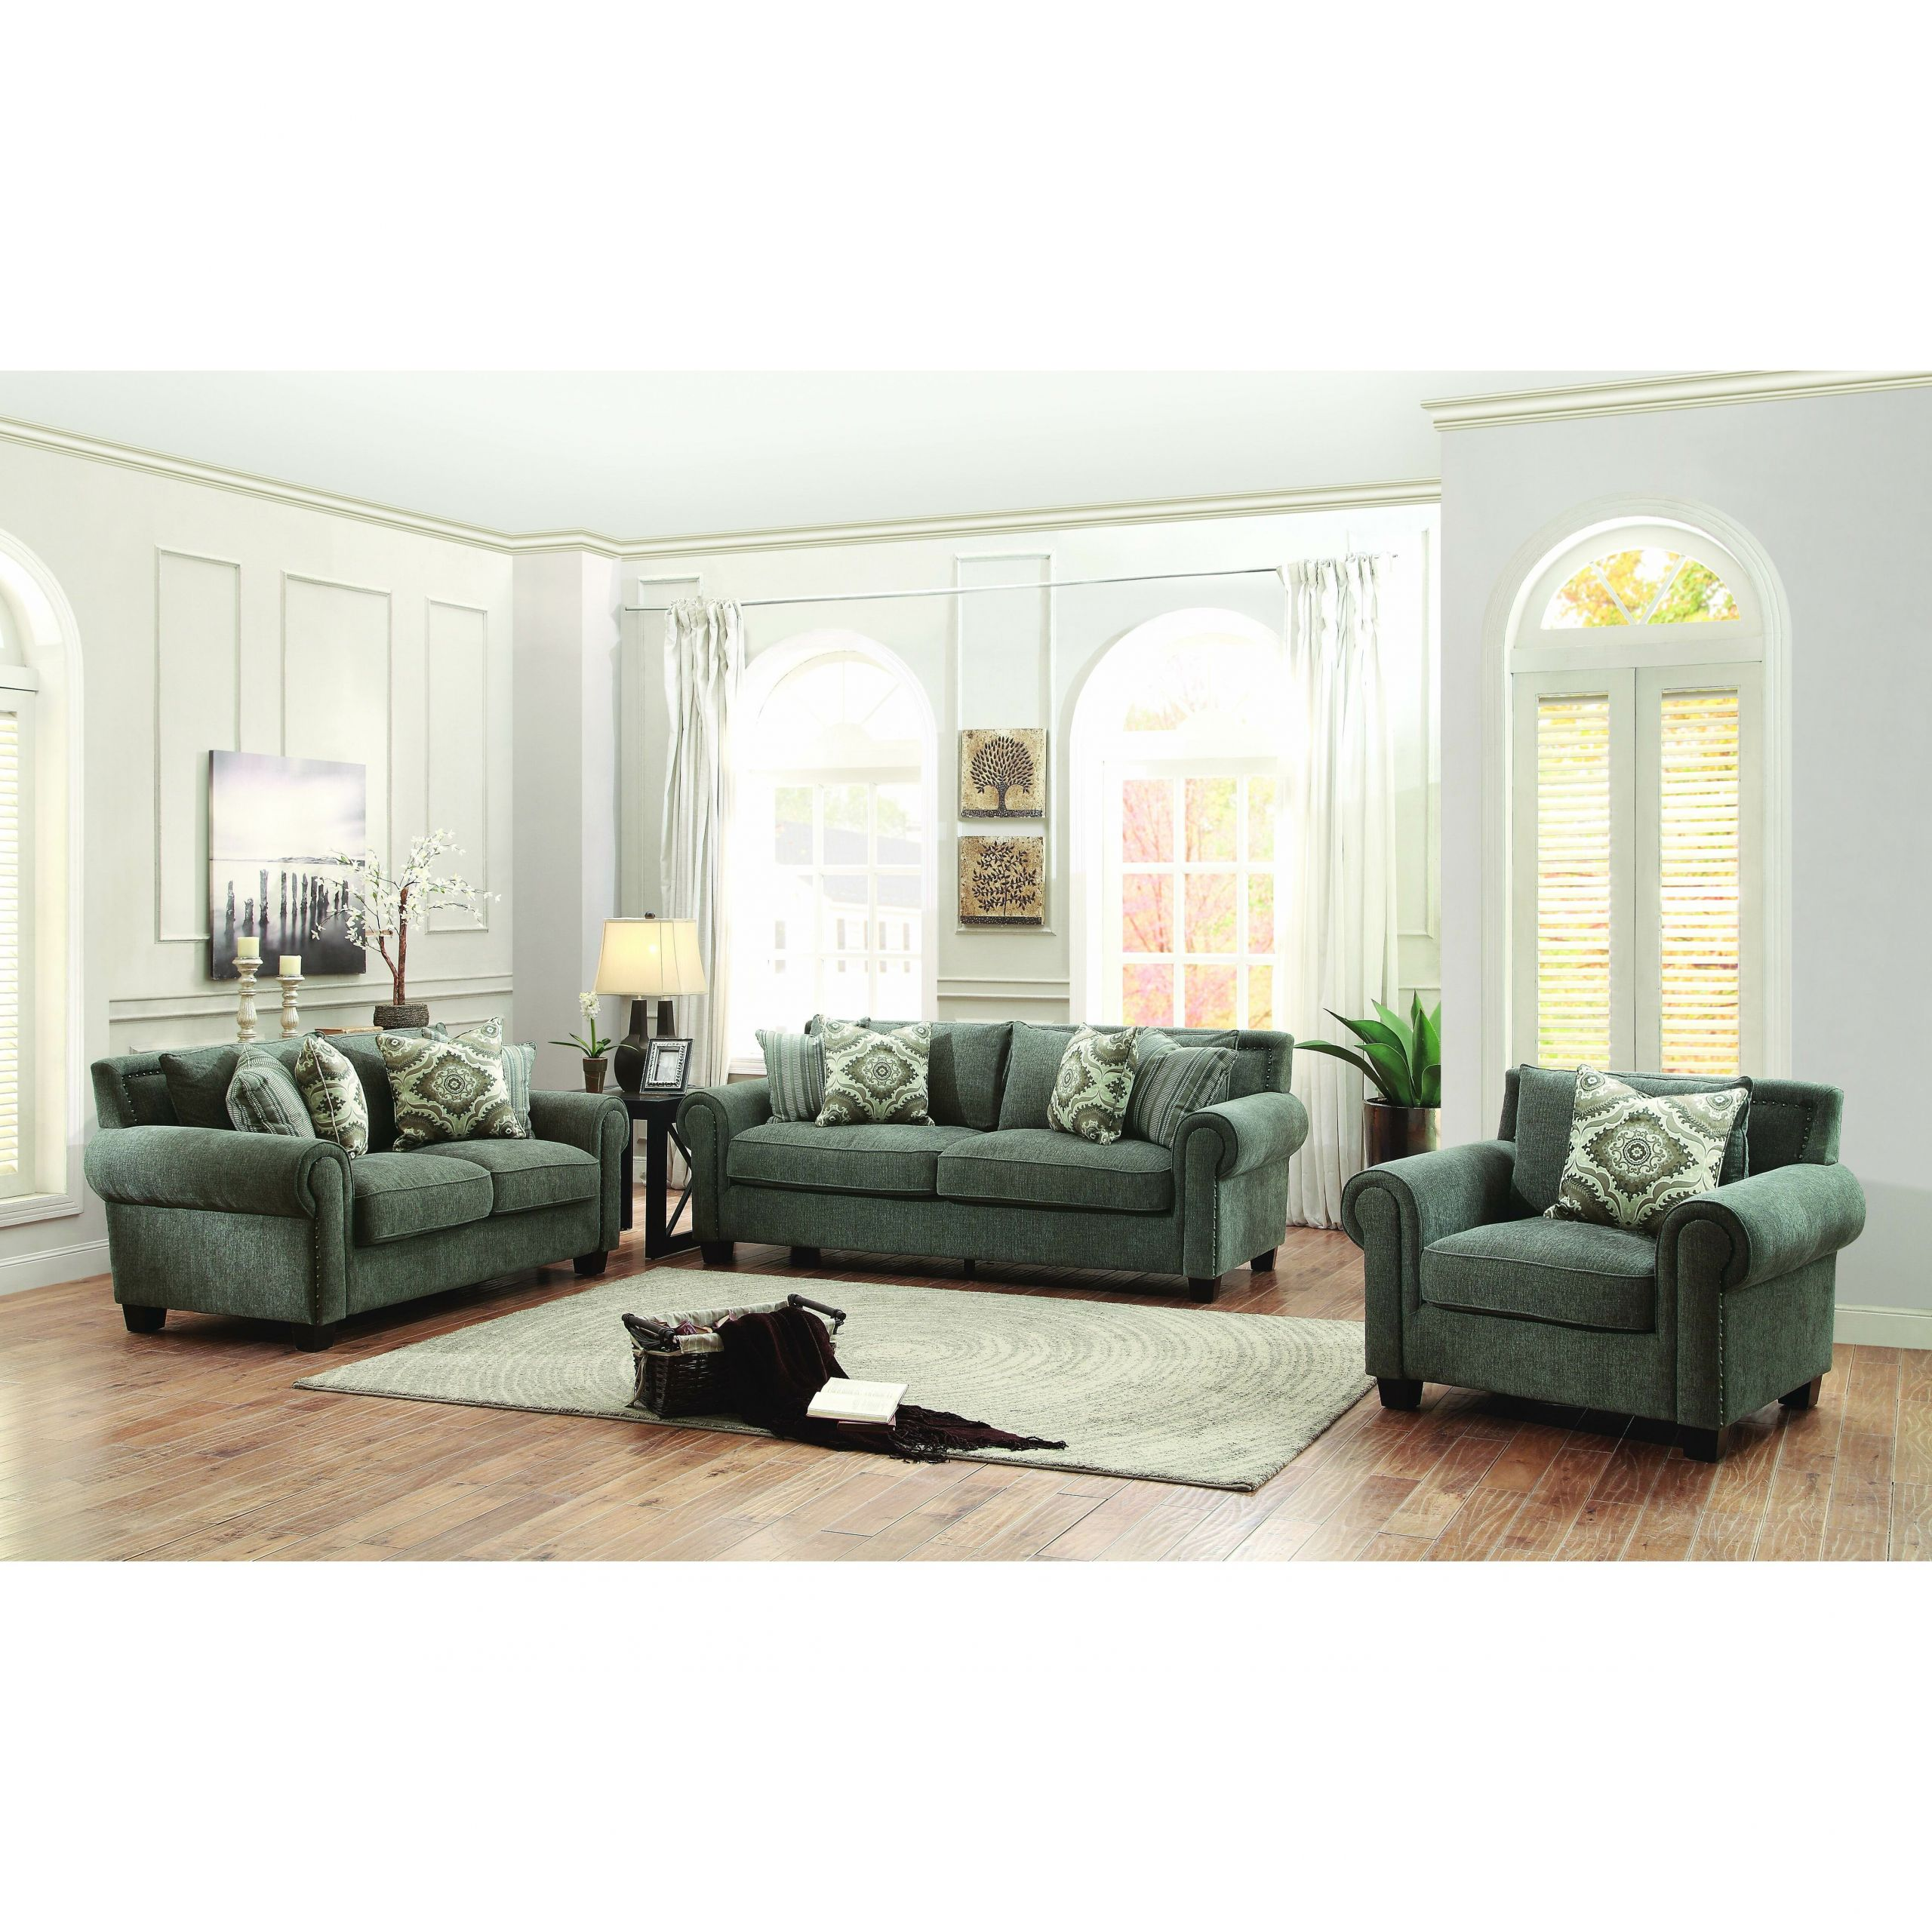 Wayfair Living Room Tables  Hooke Living Room Collection